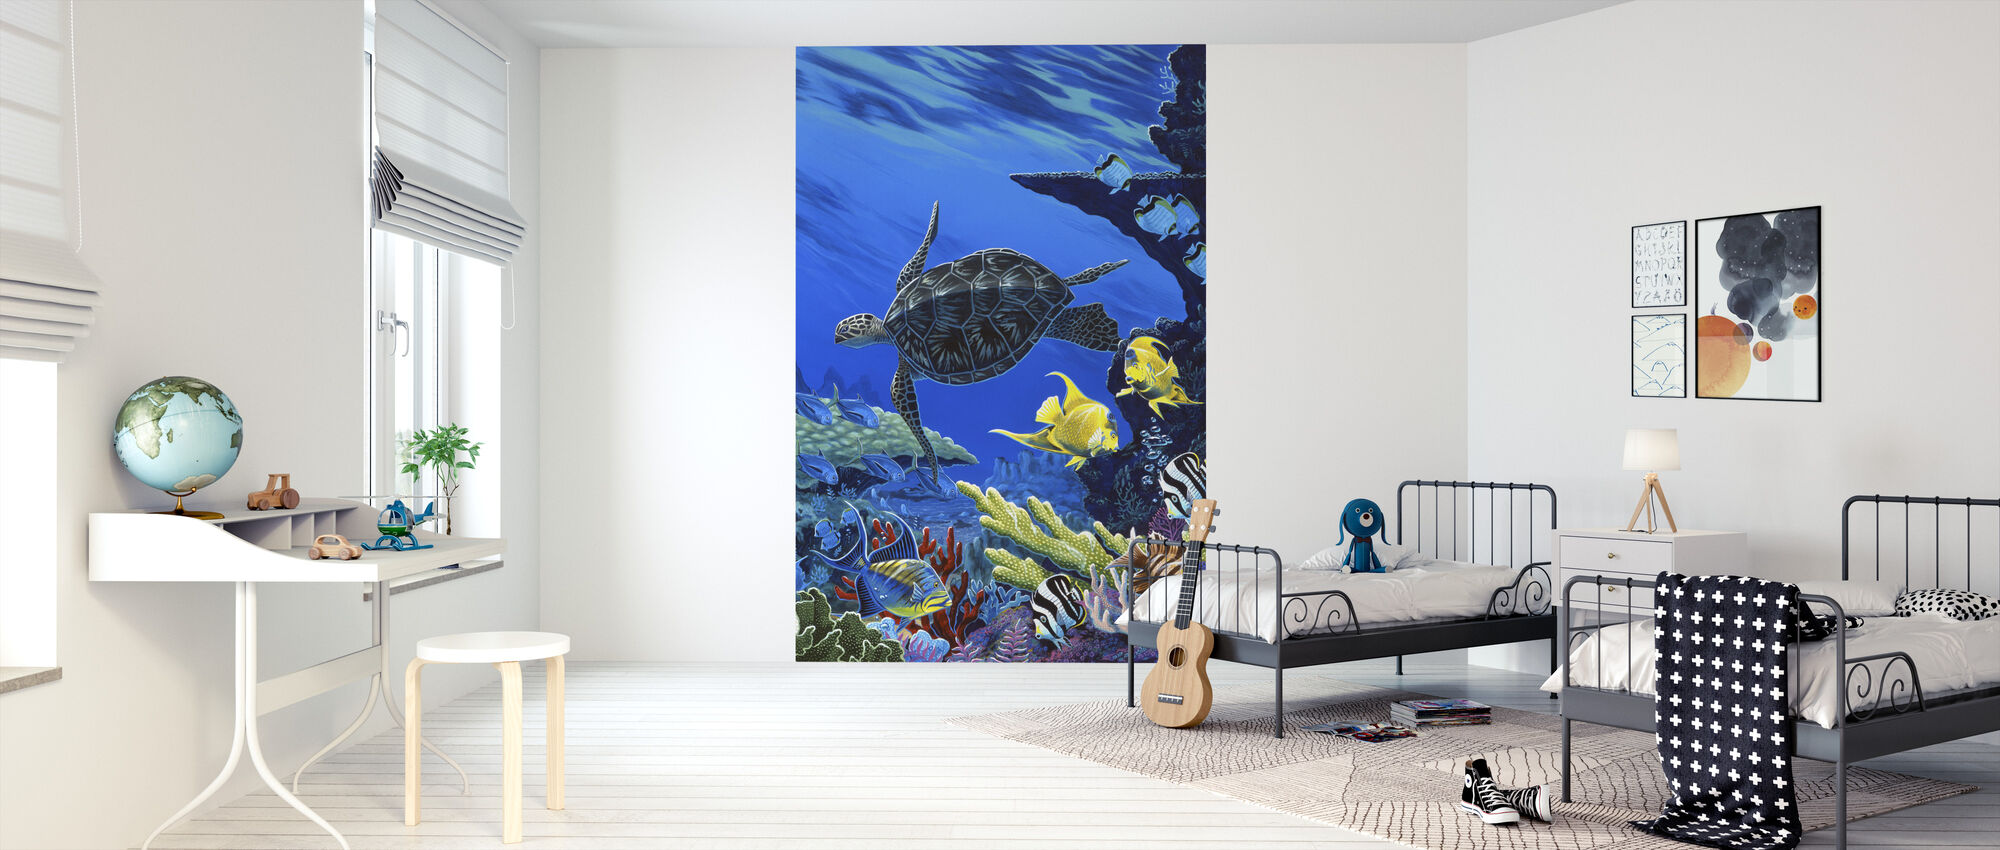 Treasures of the Sea - Wallpaper - Kids Room